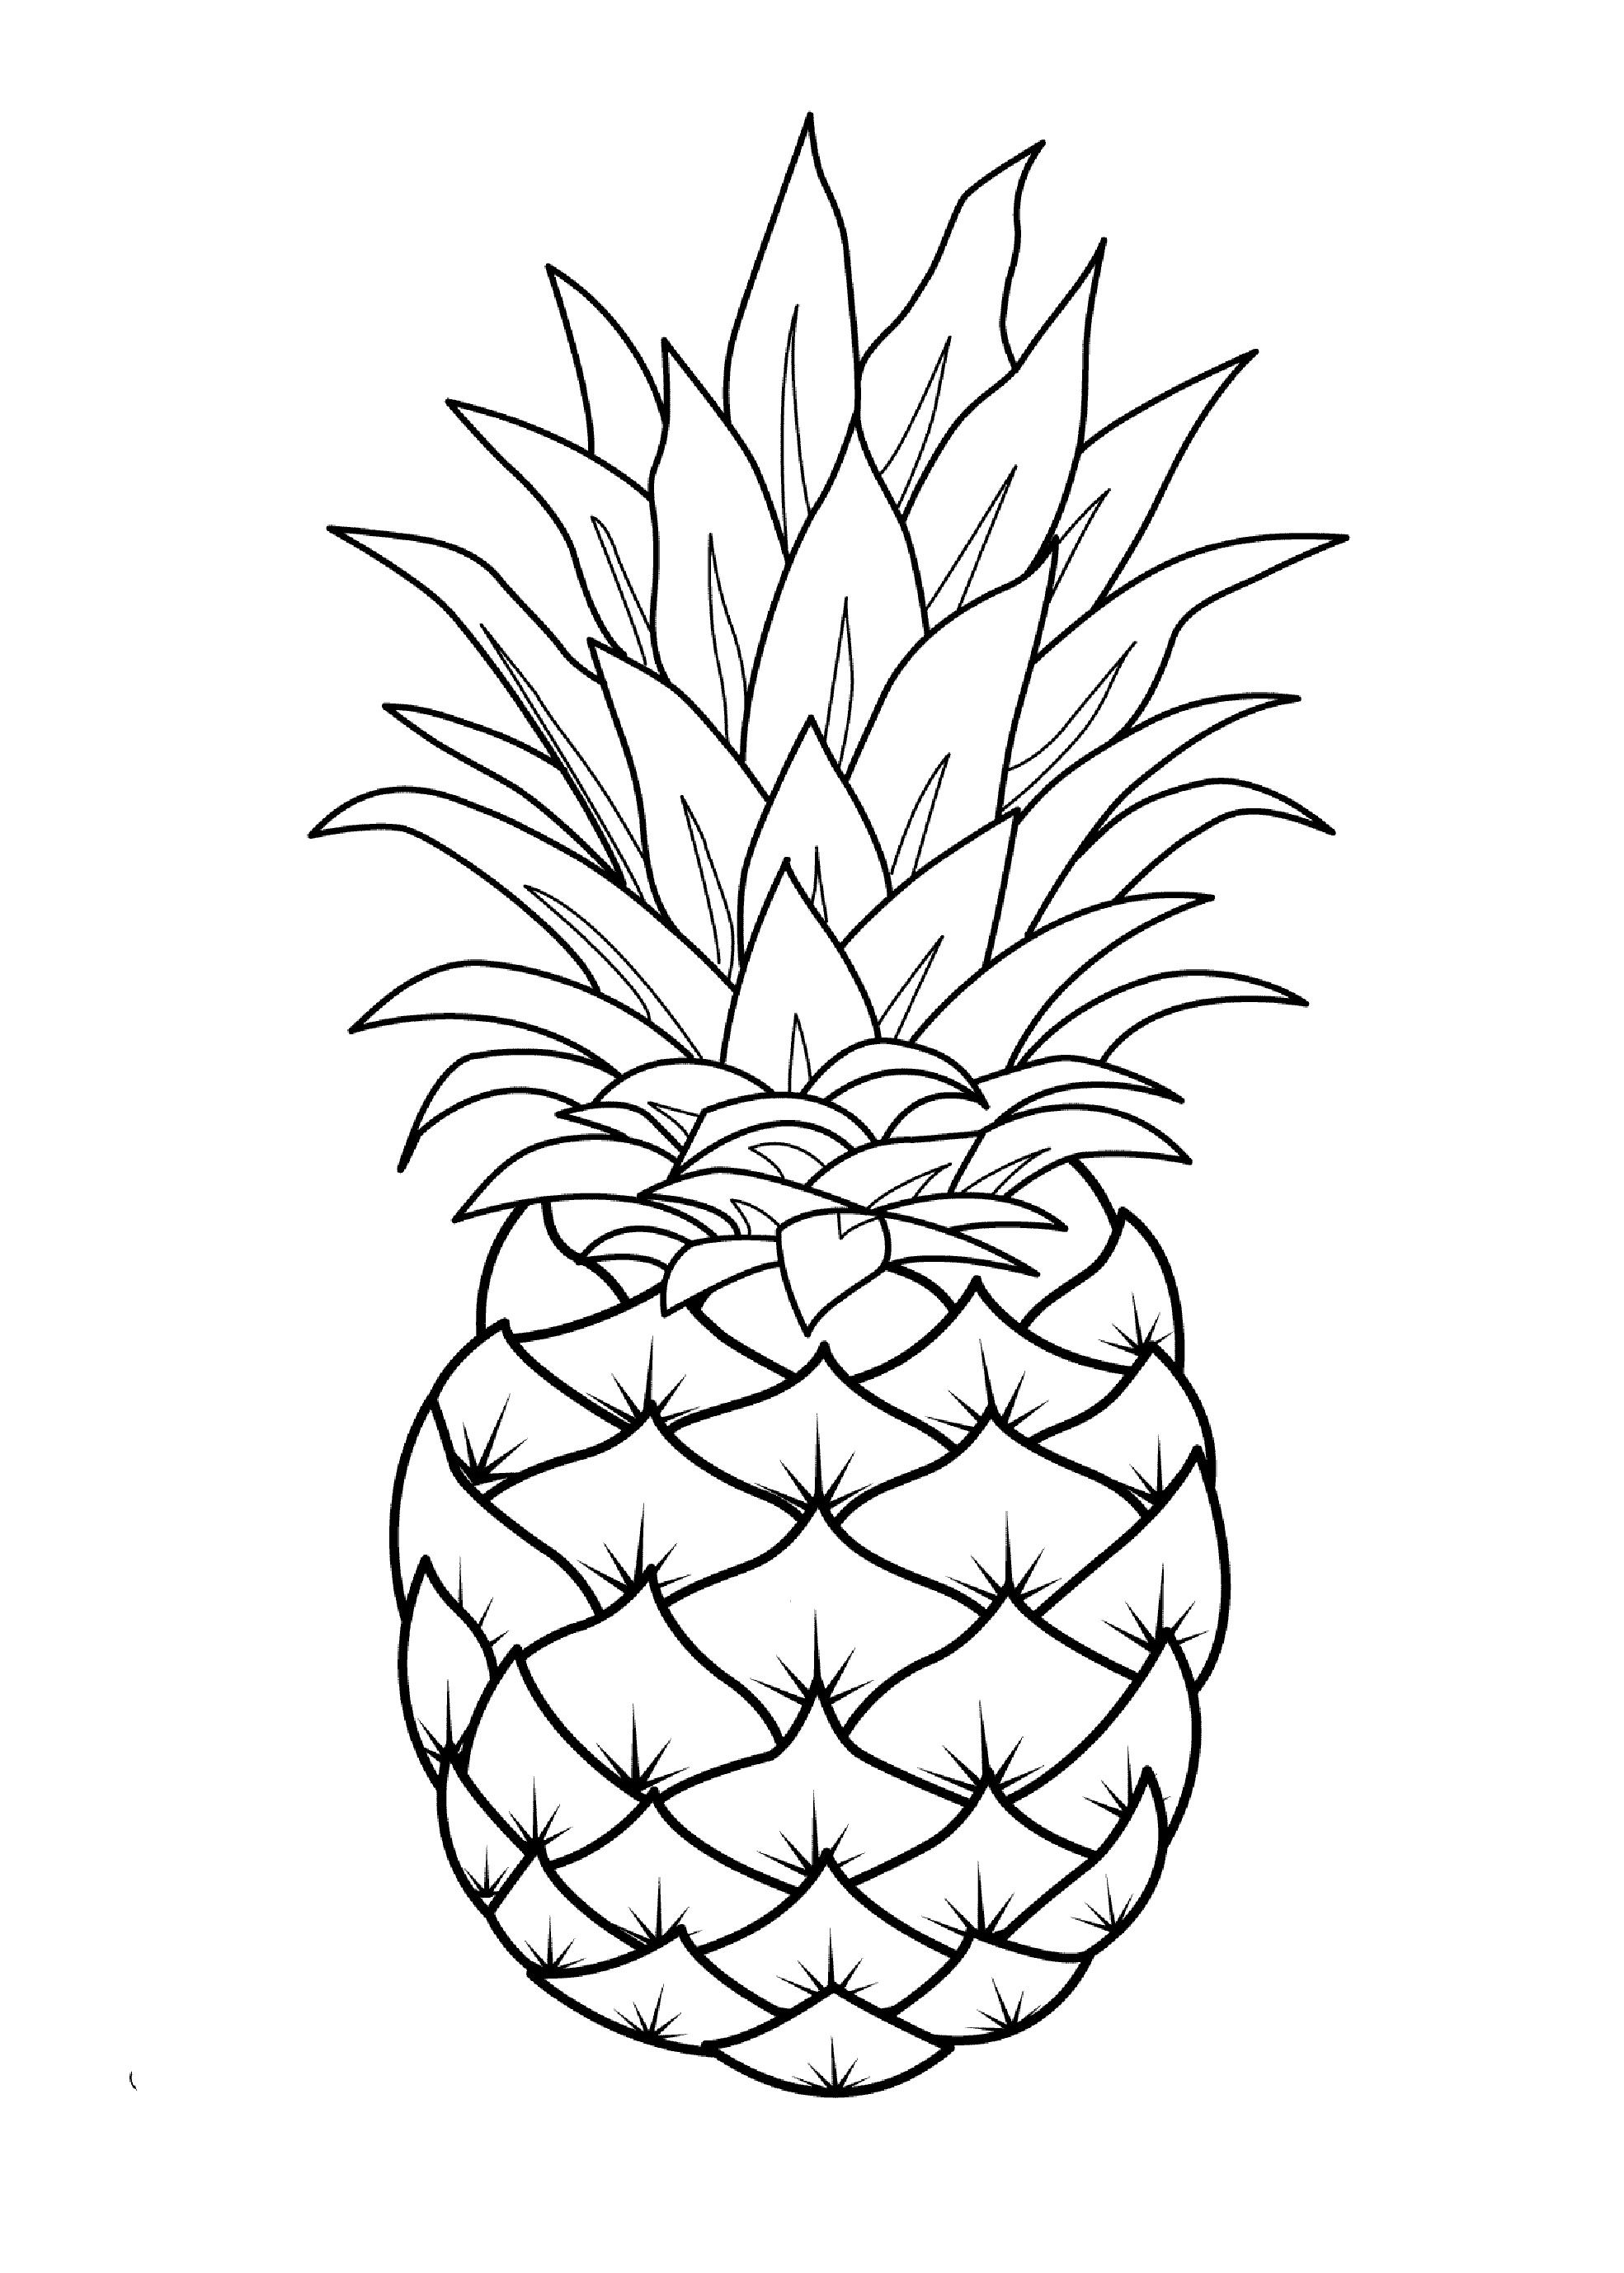 85 Jpg 1969 2756 Fruit Coloring Pages Pineapple Drawing